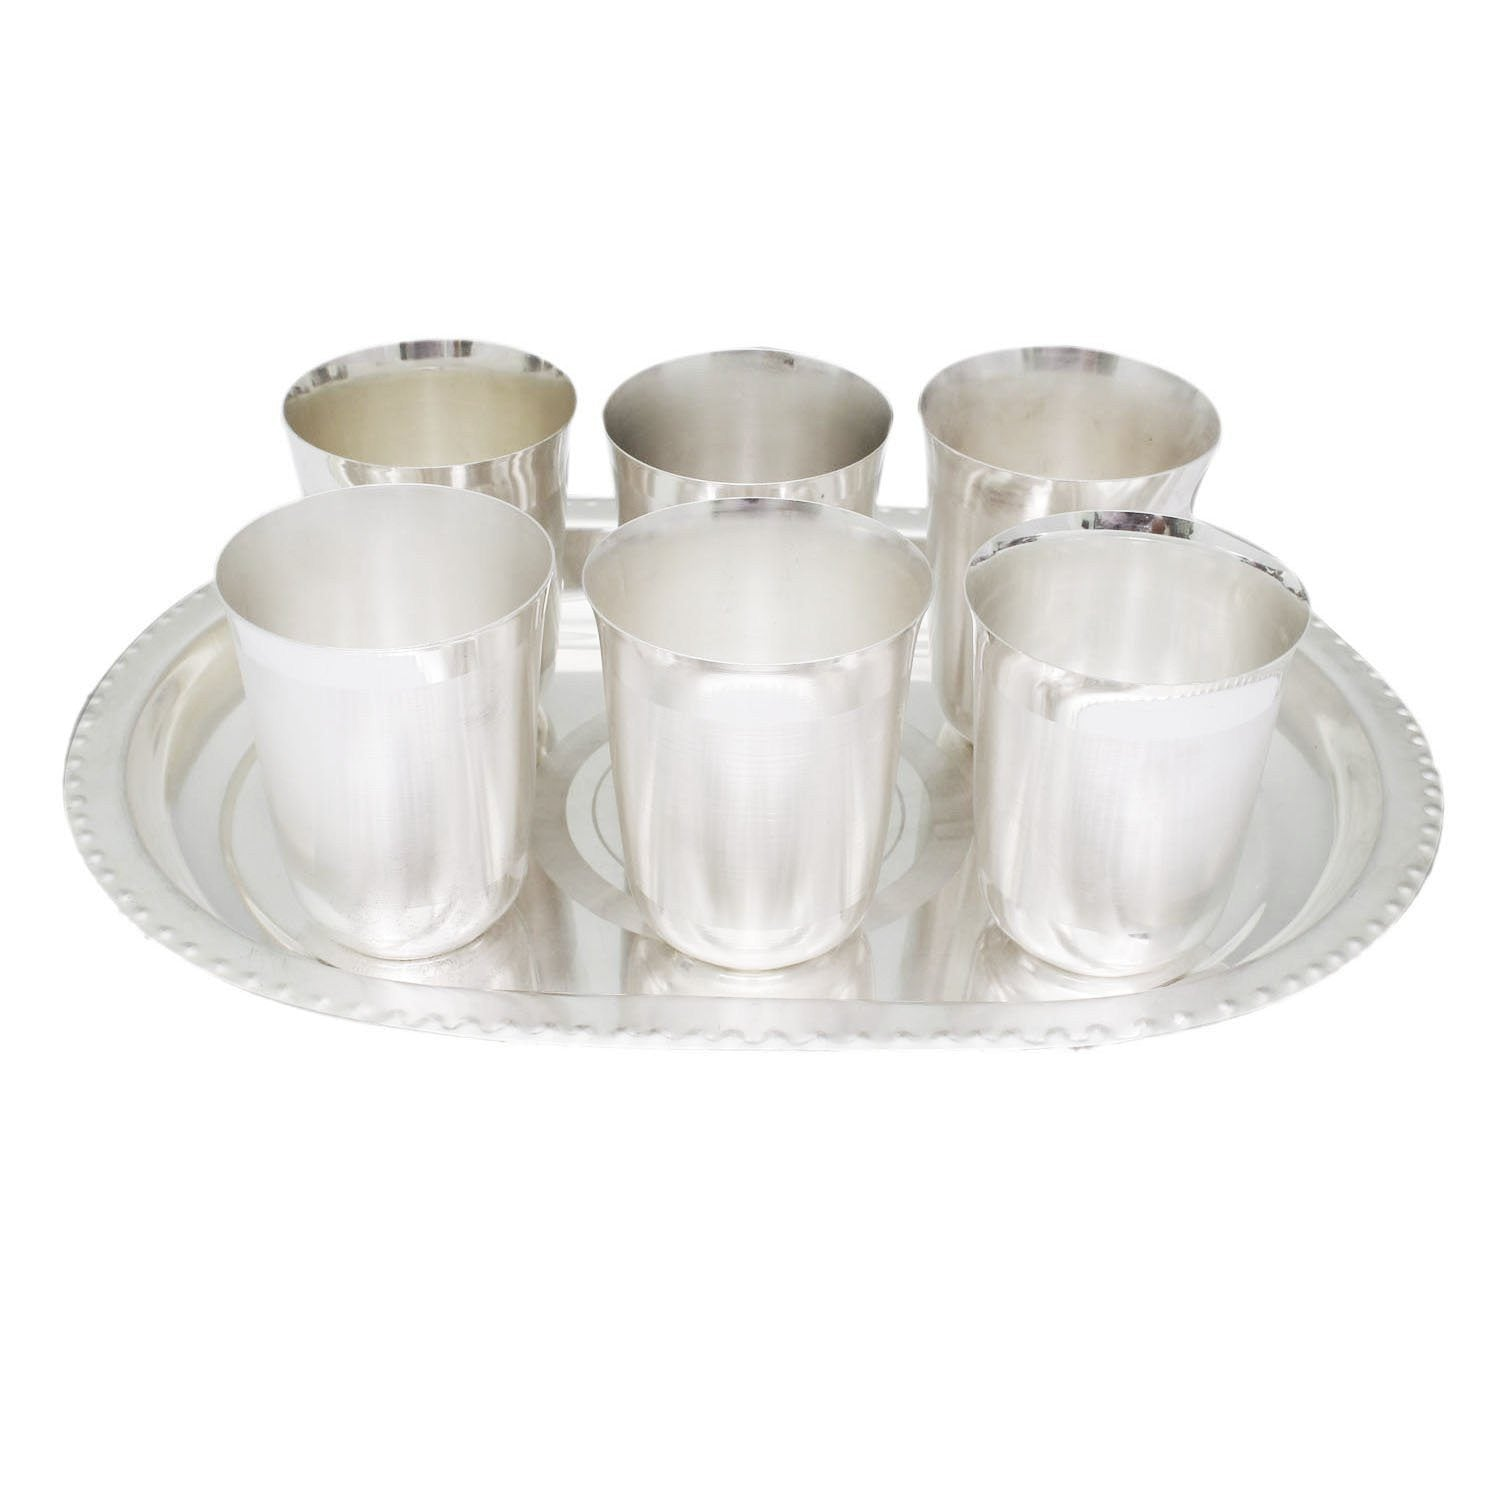 Silver Plated - In Indea Silver Plated Artistic Flower Glass Set With Oval Tray 7 Pcs